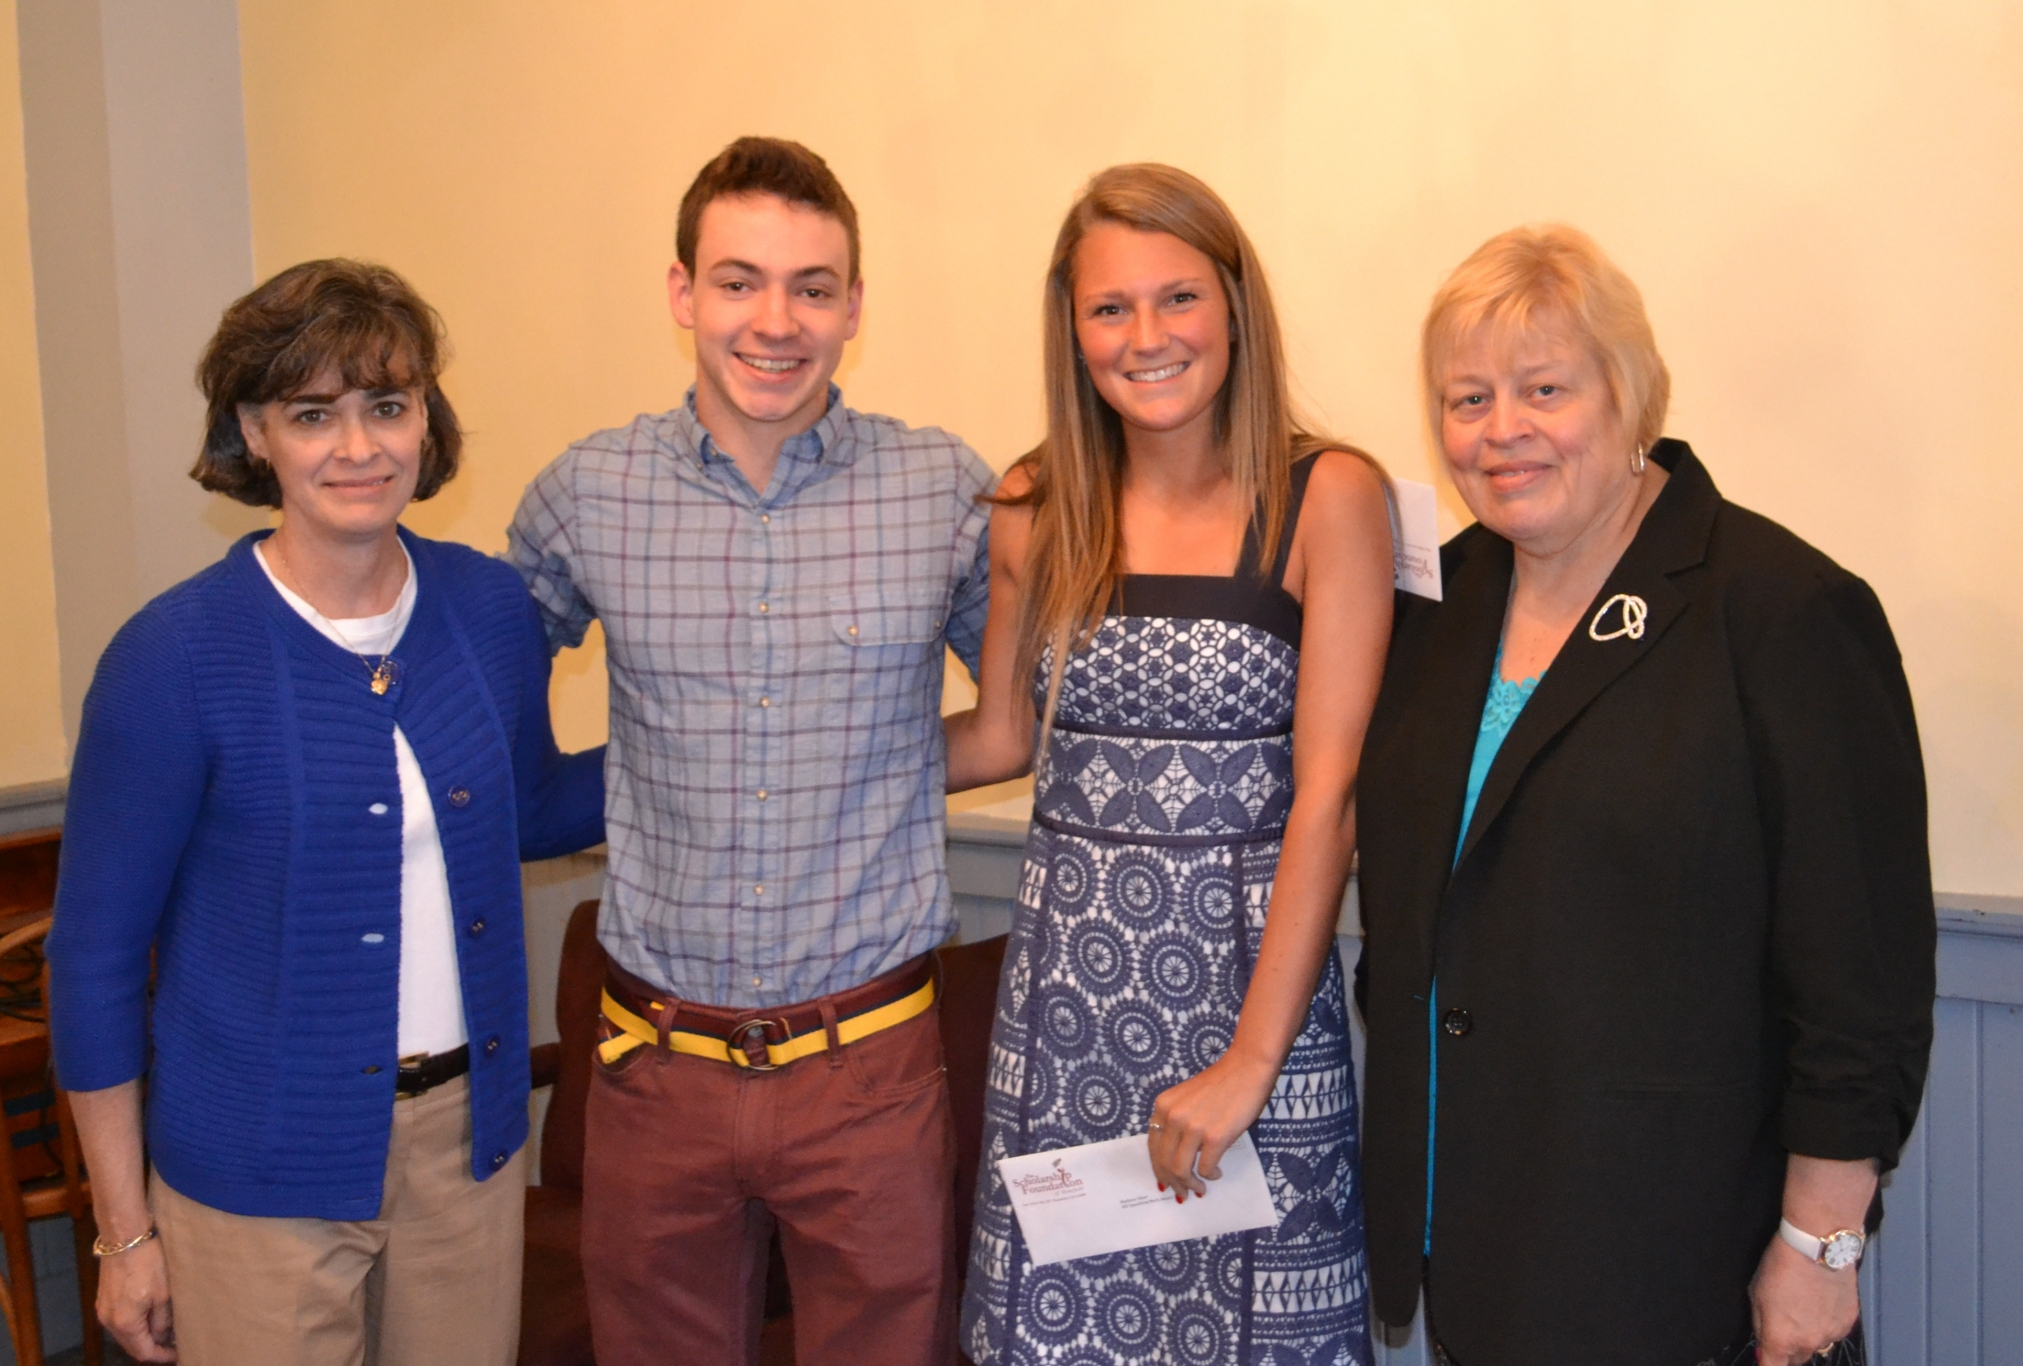 Two of the 2014 Spaulding Merit Award Winners, with President Faith Hodgkins (right) and Vice President Jennifer Walter (left)